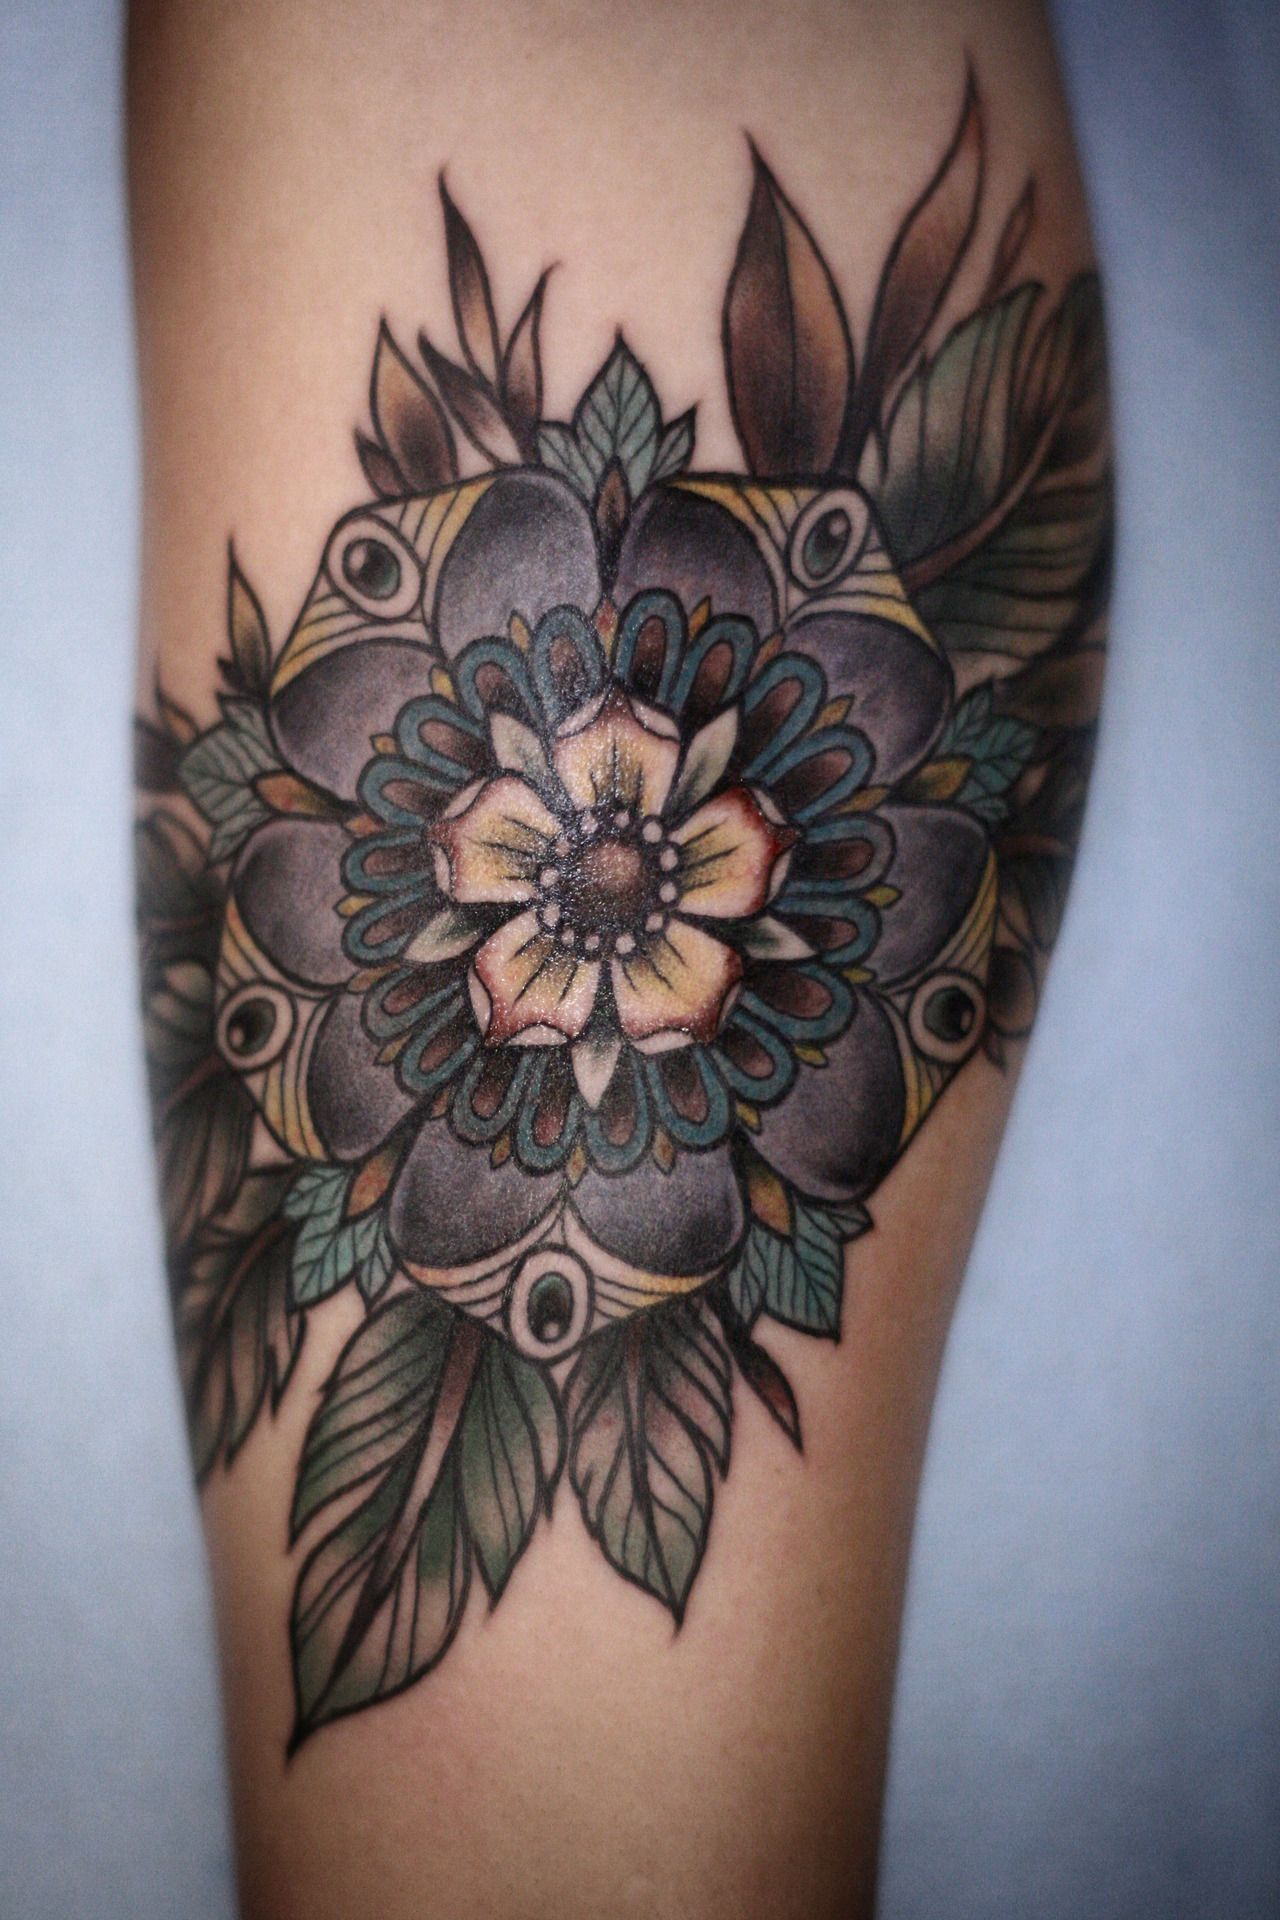 This is a gorgeous tattoo tatoos pinterest gorgeous tattoos this is a gorgeous tattoo izmirmasajfo